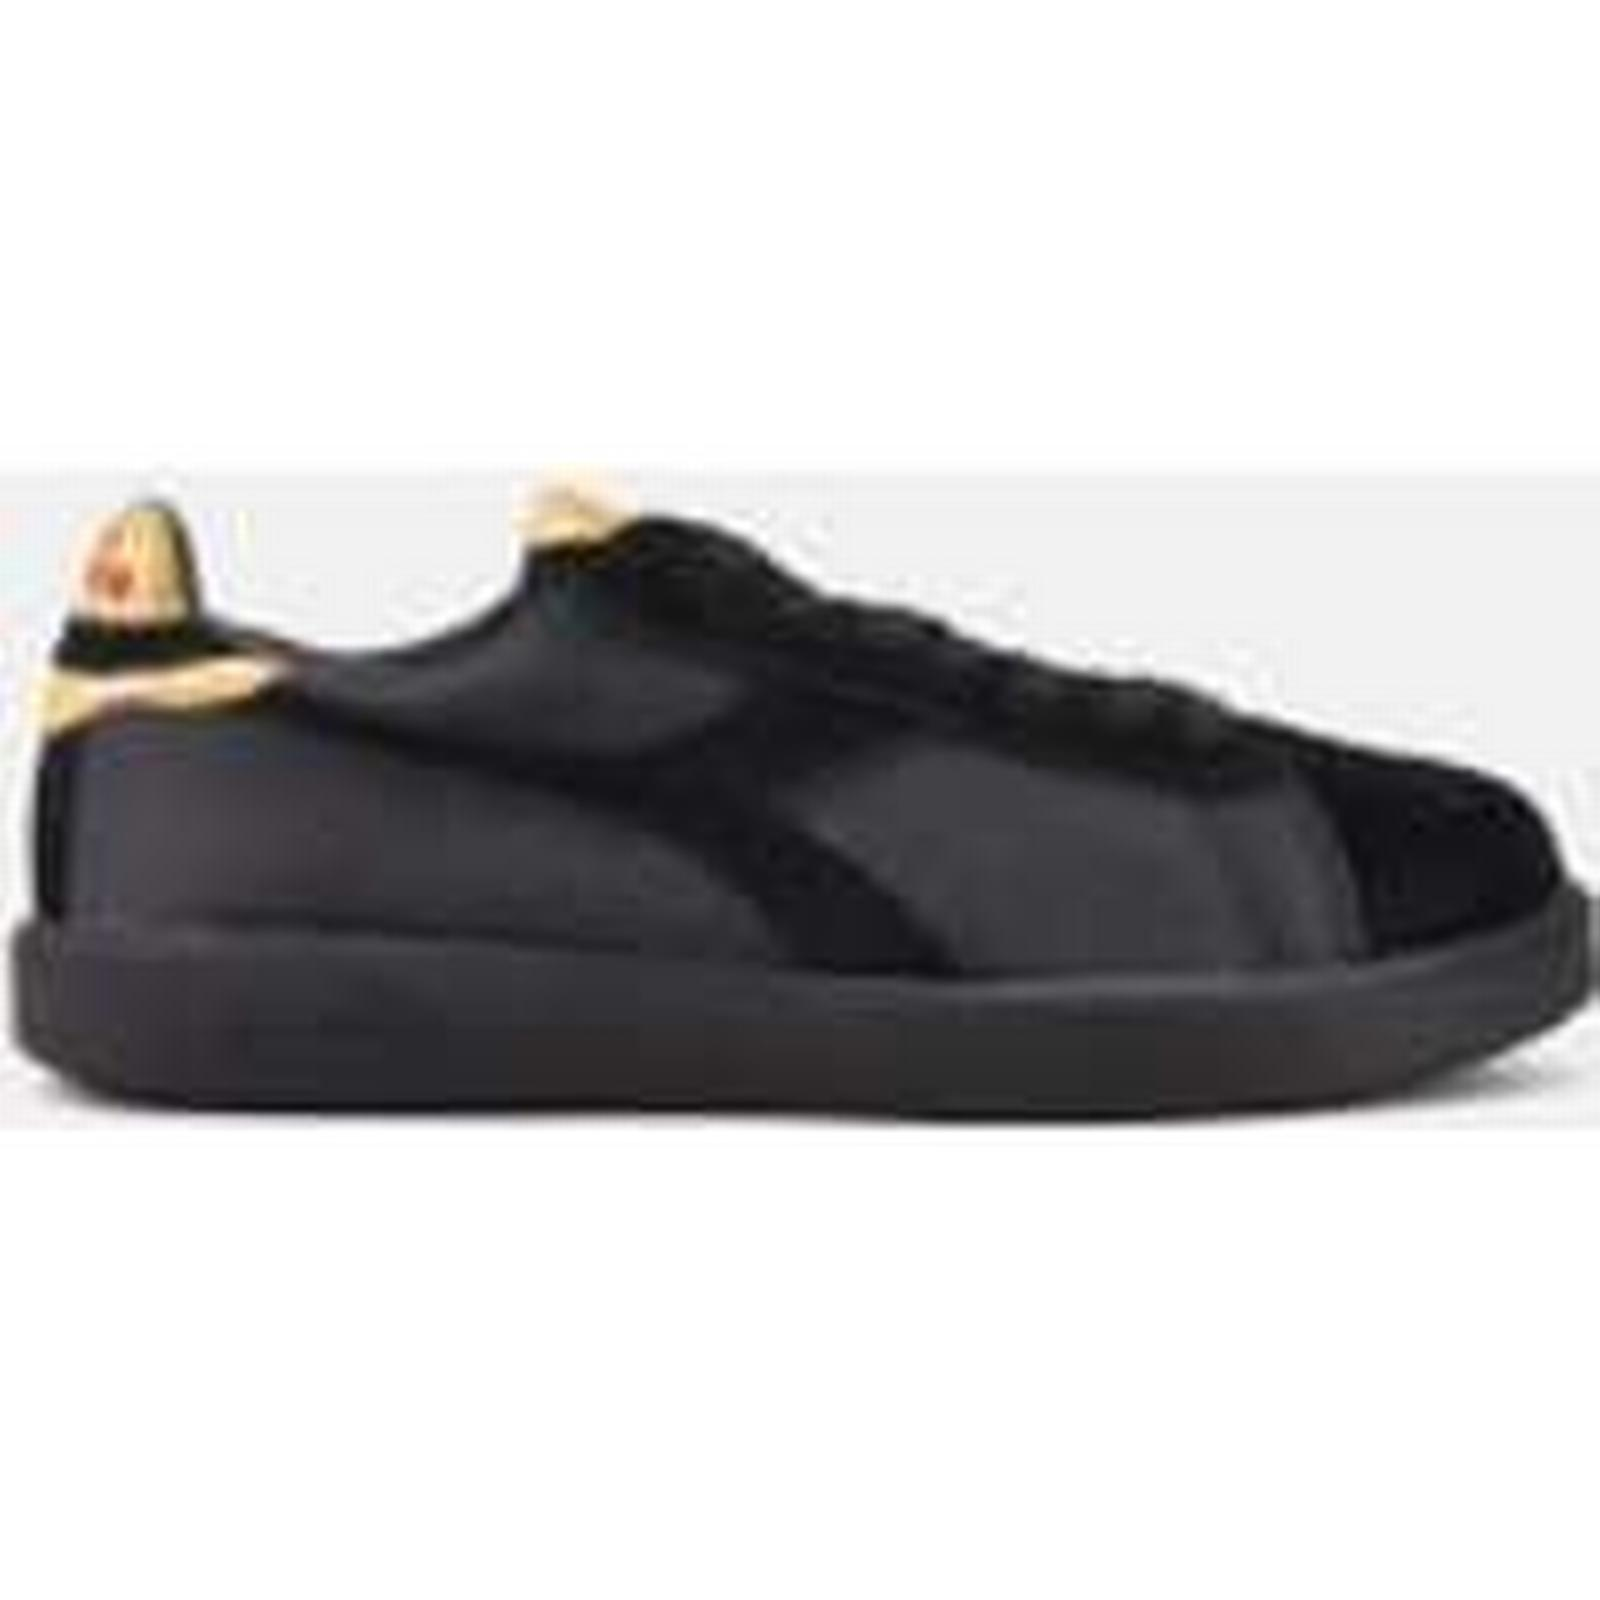 Diadora Women's Game - Wide Trainers - Black - Game UK 7 - Black 79b445